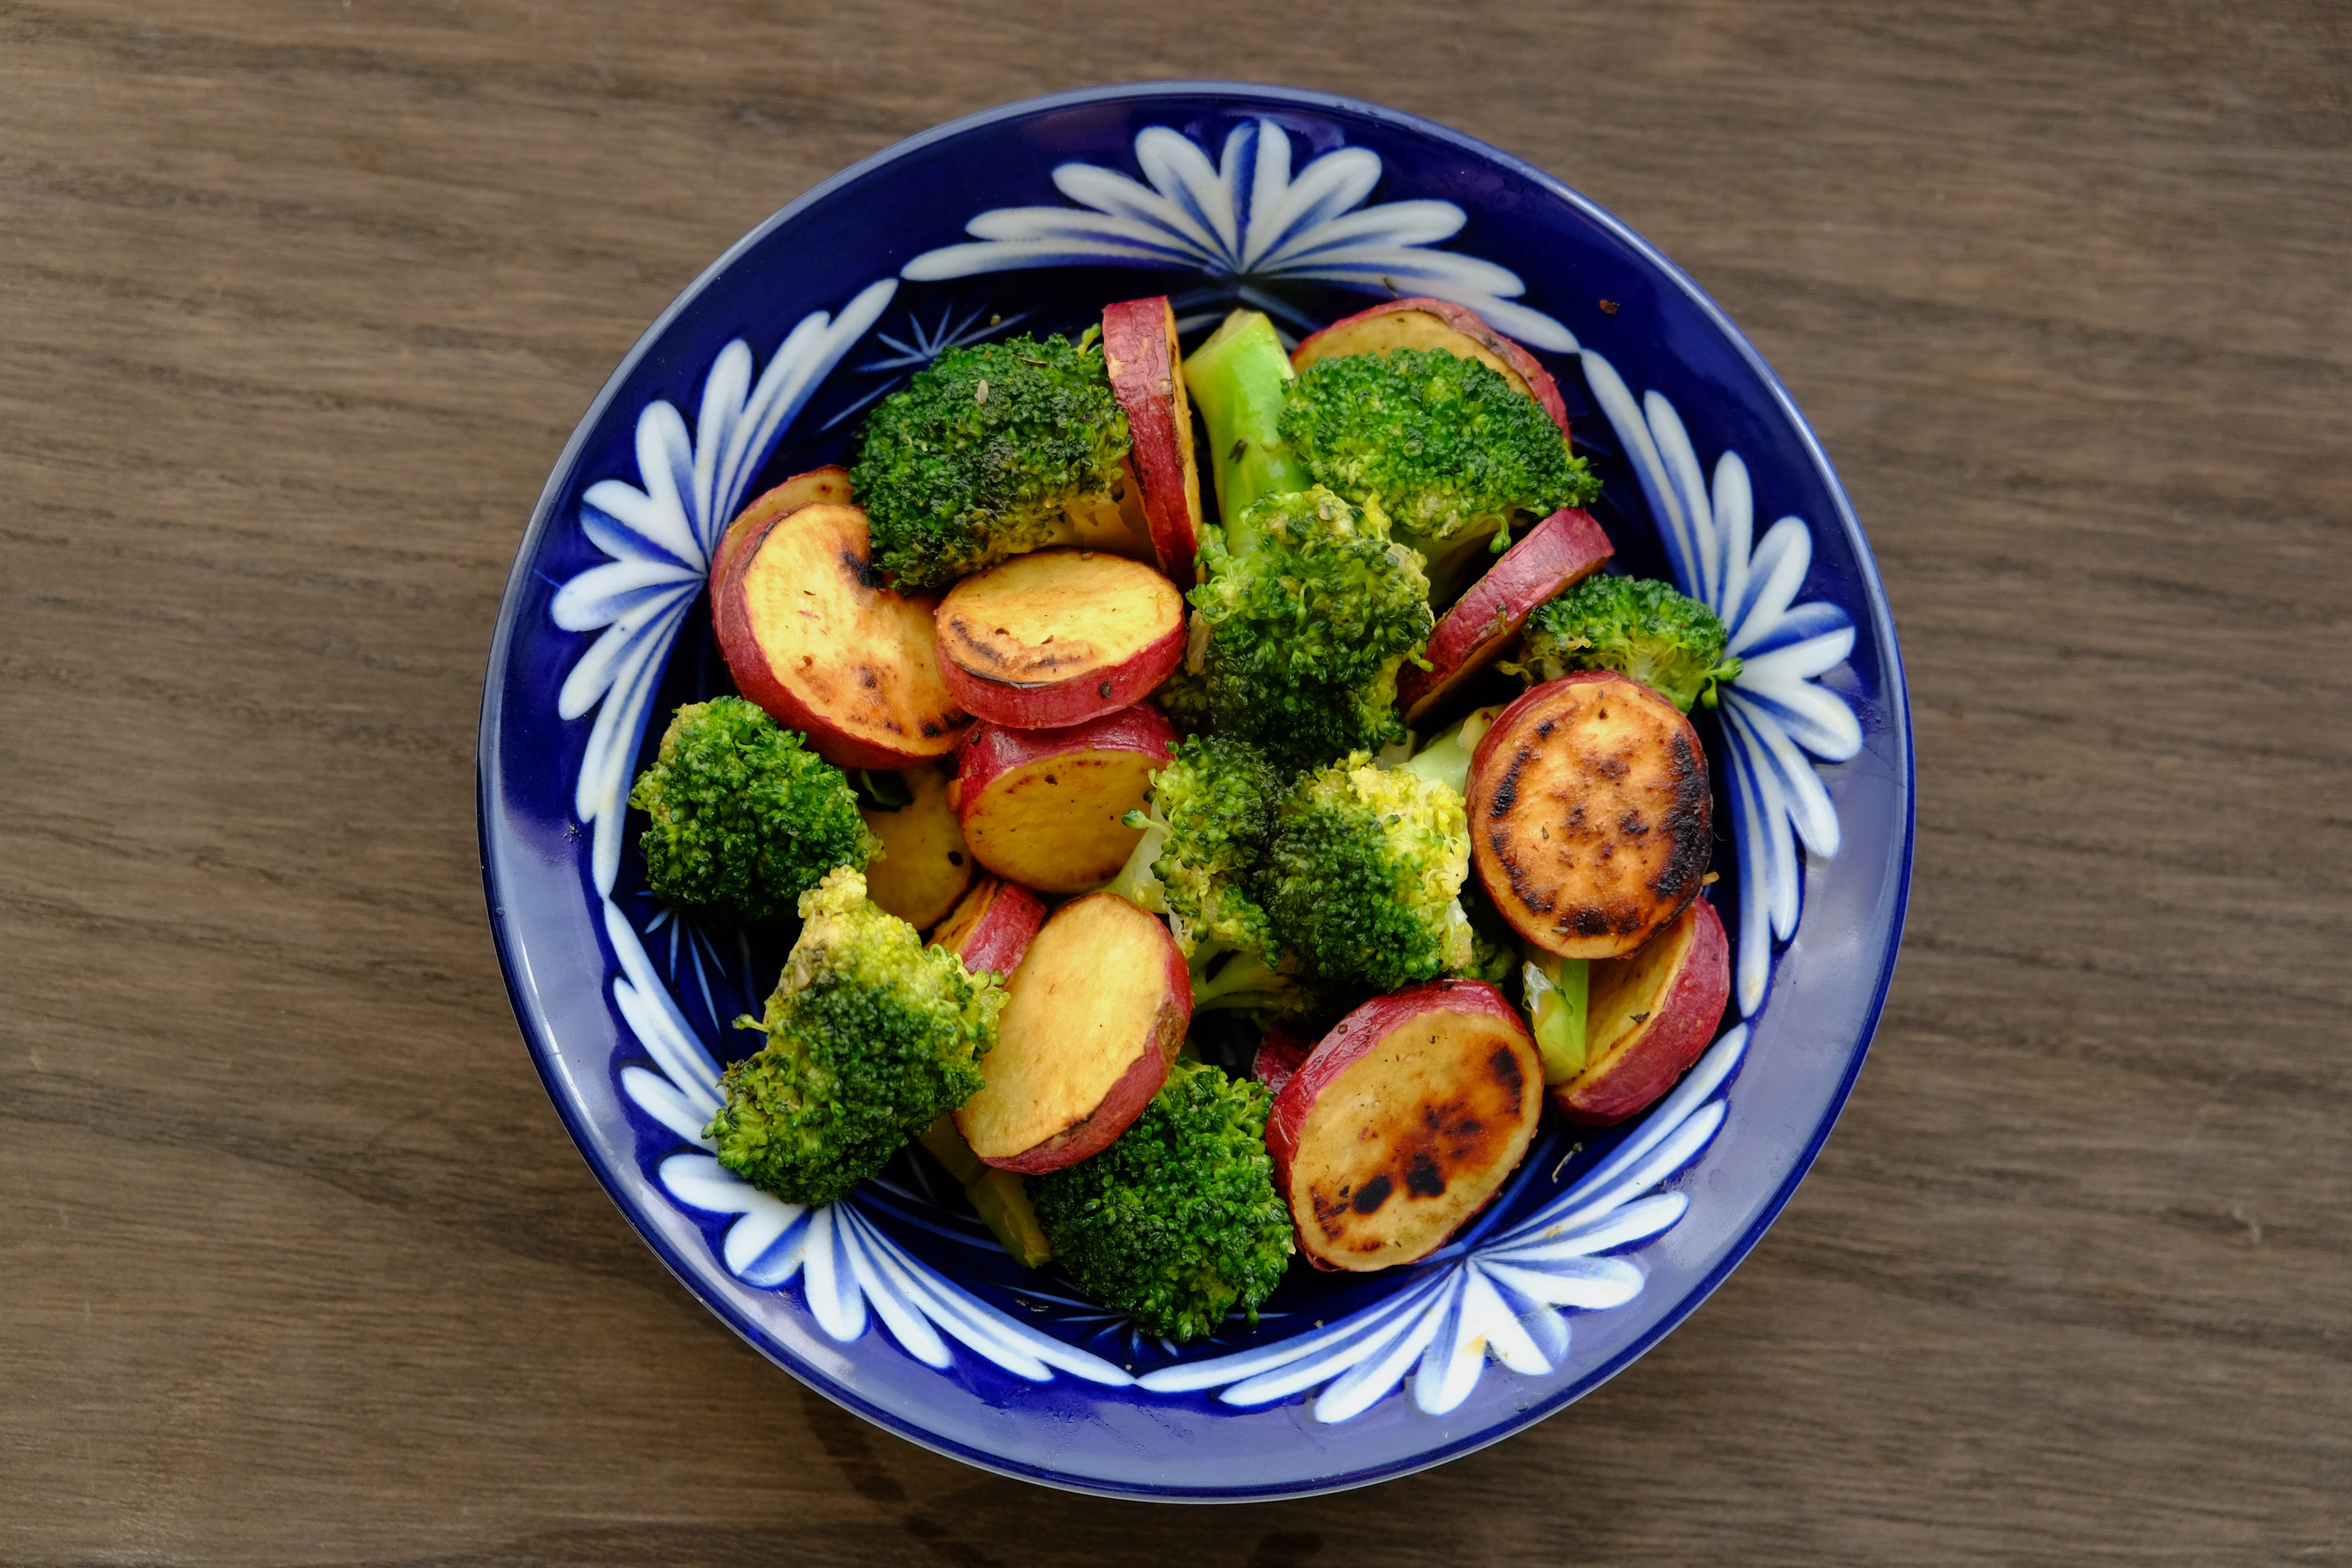 さつまいもとブロッコリーのバルサミコ酢炒め Vegan Stir fried Sweet Potato and Broccoli with Balsamic Vinegar Sauce